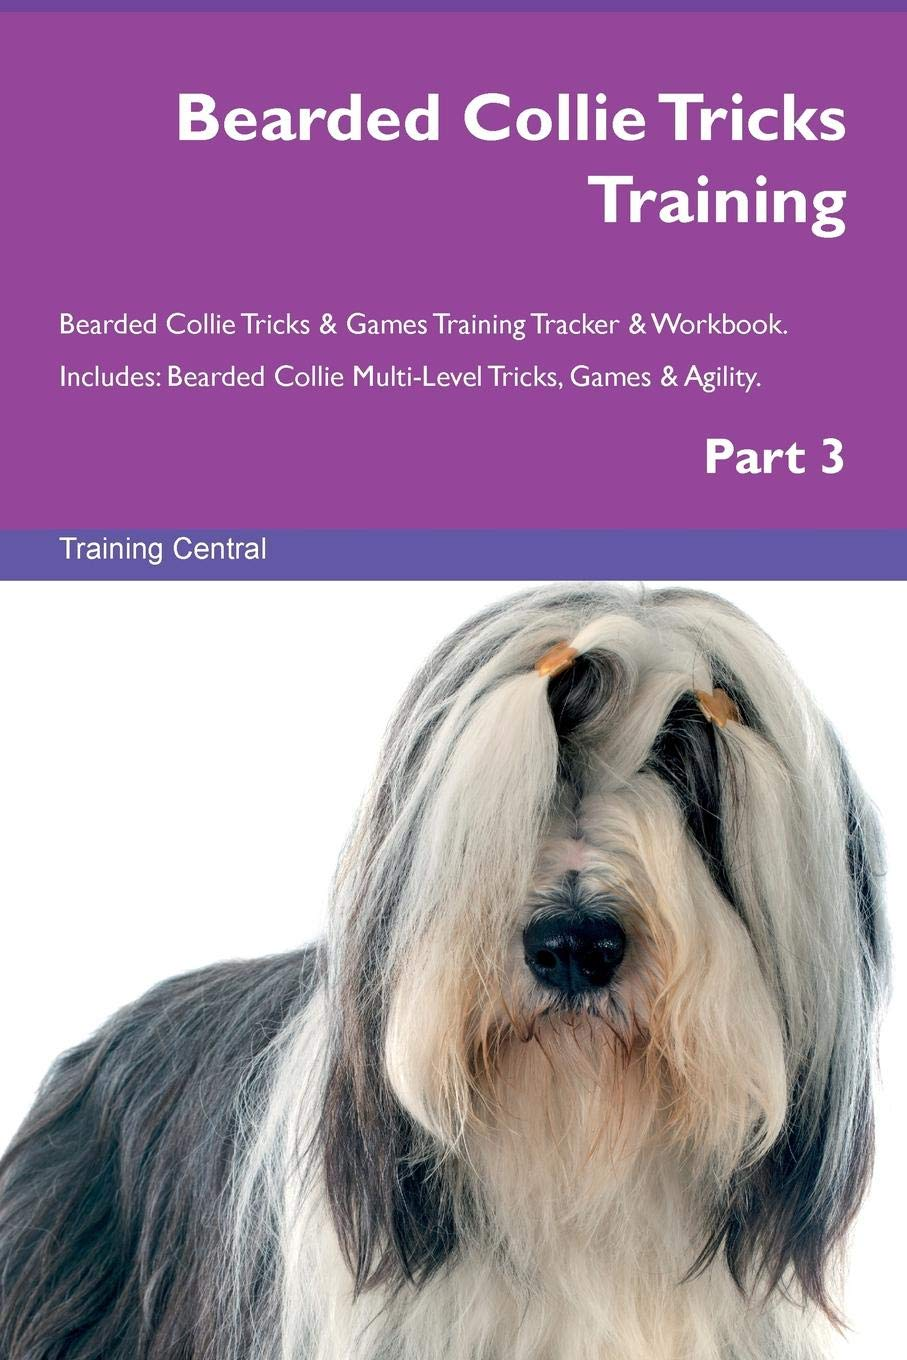 Bearded Collie Tricks Training Bearded Collie Tricks & Games Training Tracker & Workbook. Includes: Bearded Collie Multi…